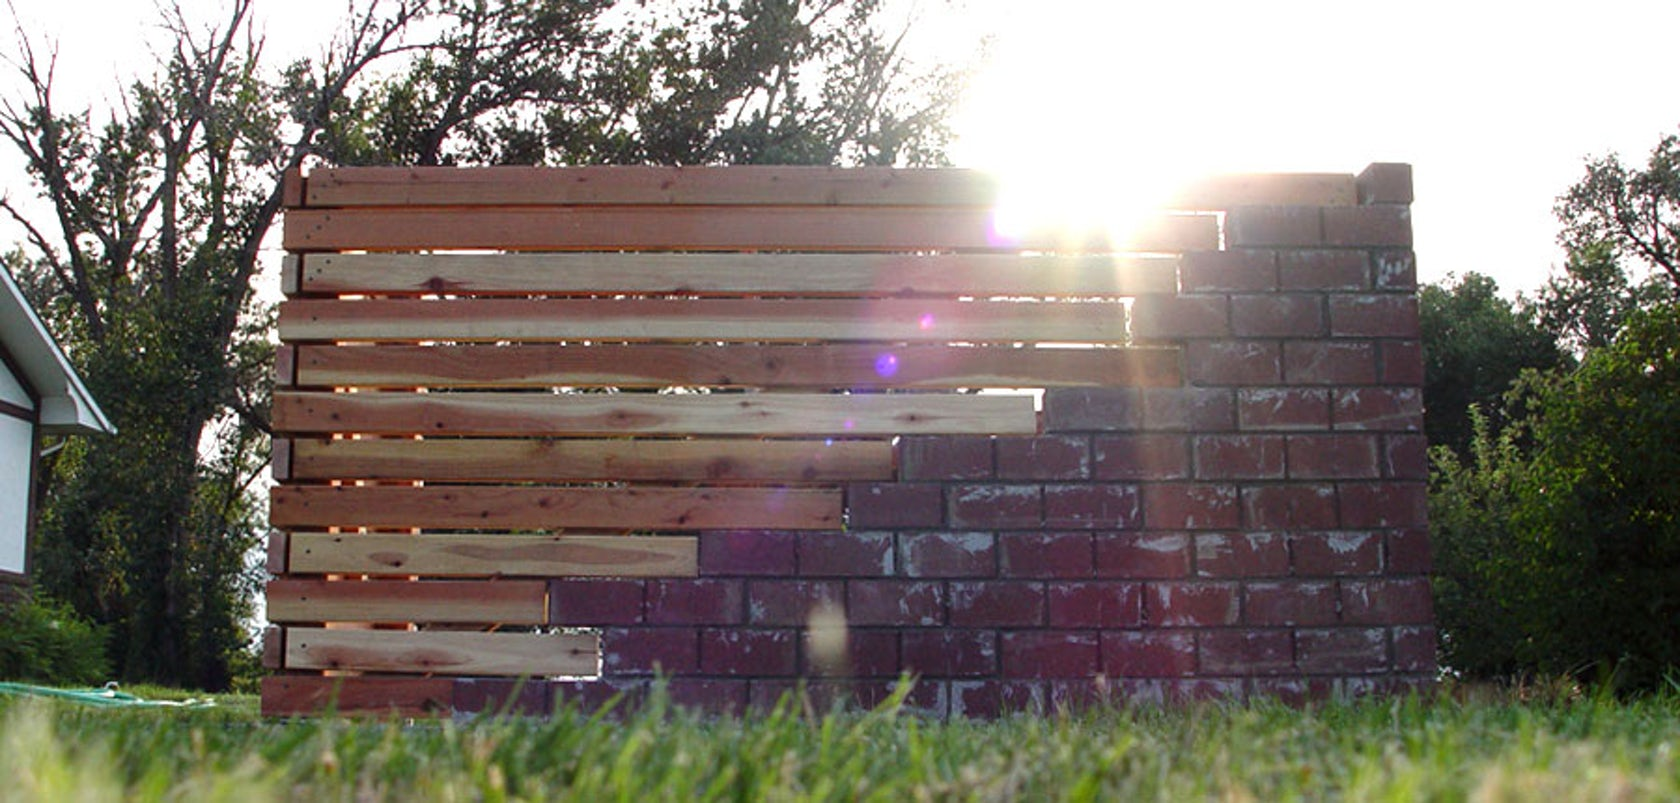 Brick + Wood Fence - Architizer